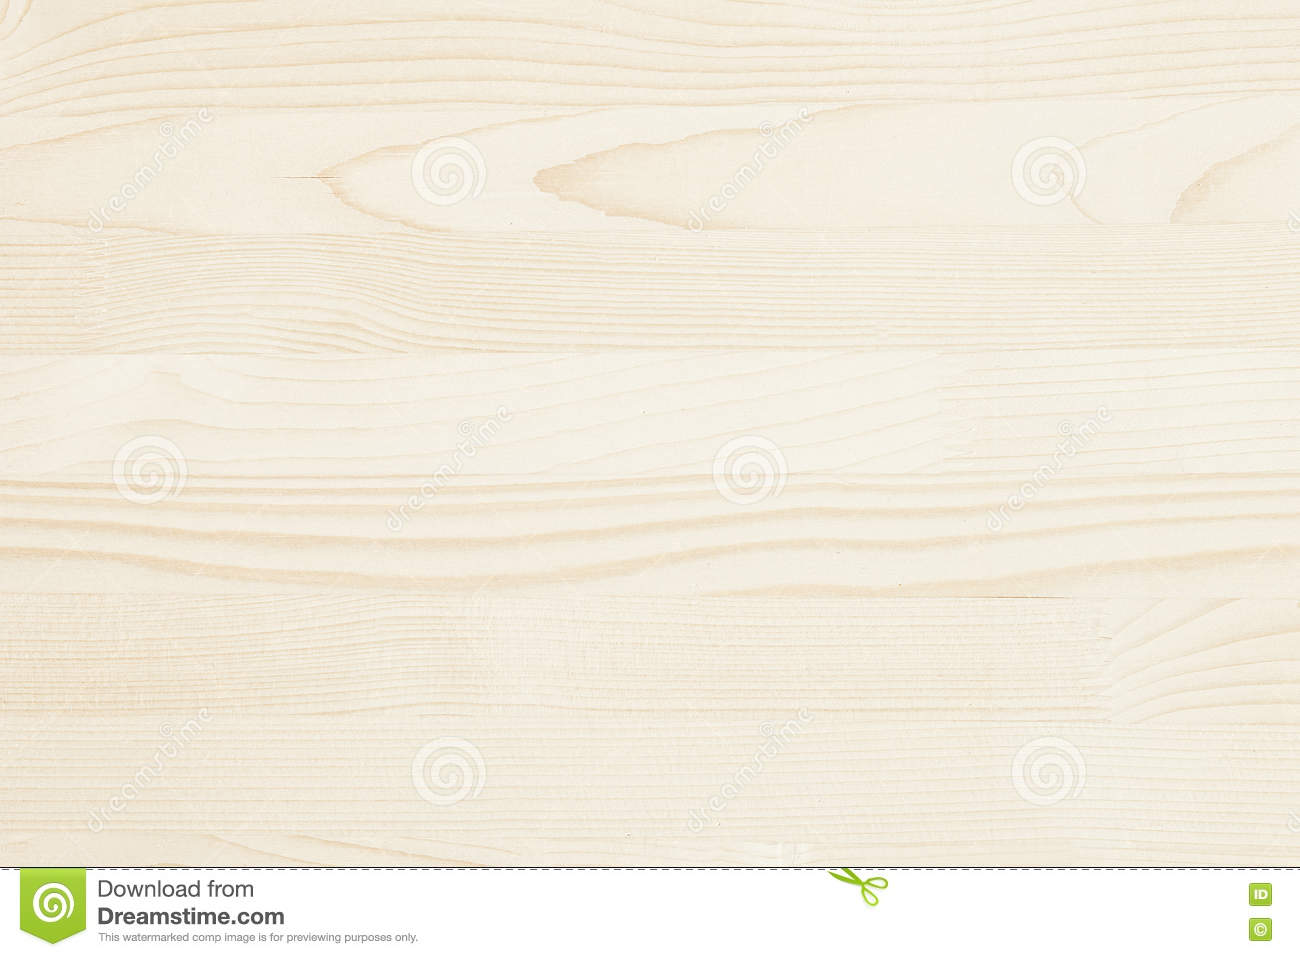 le parquet beige l ger la texture en bois le fond image stock image du beige mat riau 71069907. Black Bedroom Furniture Sets. Home Design Ideas